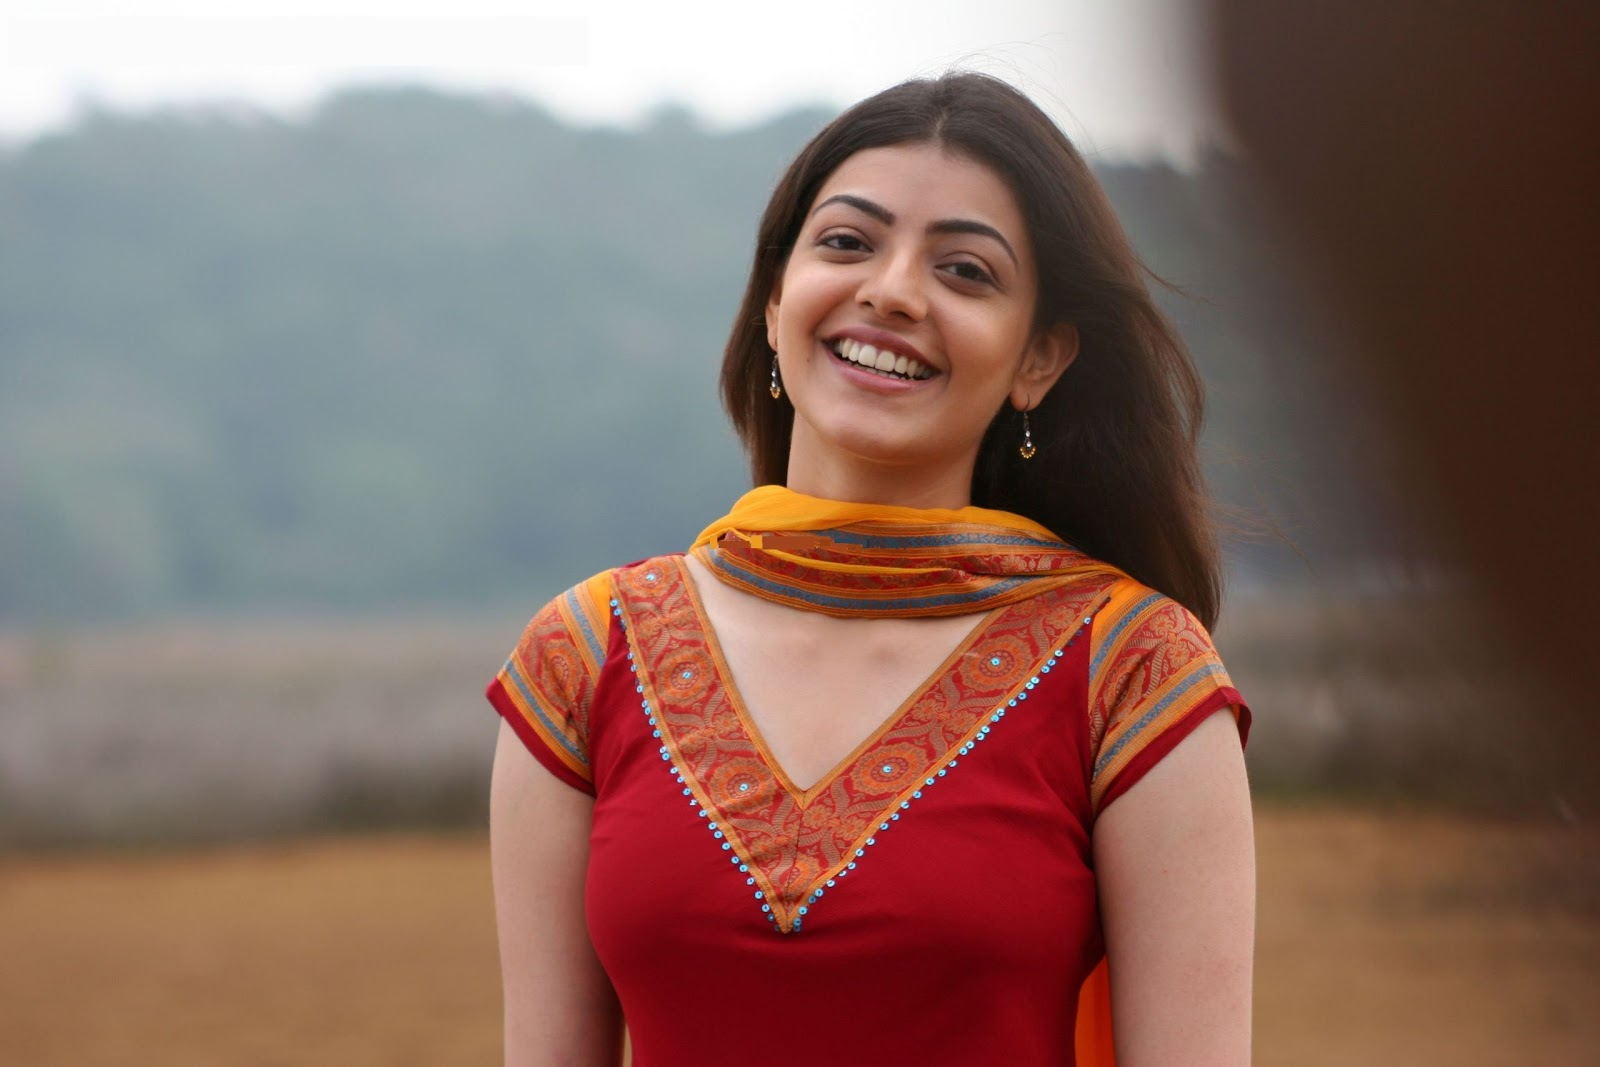 Wallpaper download kajal agarwal -  Kajal Agarwal Desktop Wallpapers